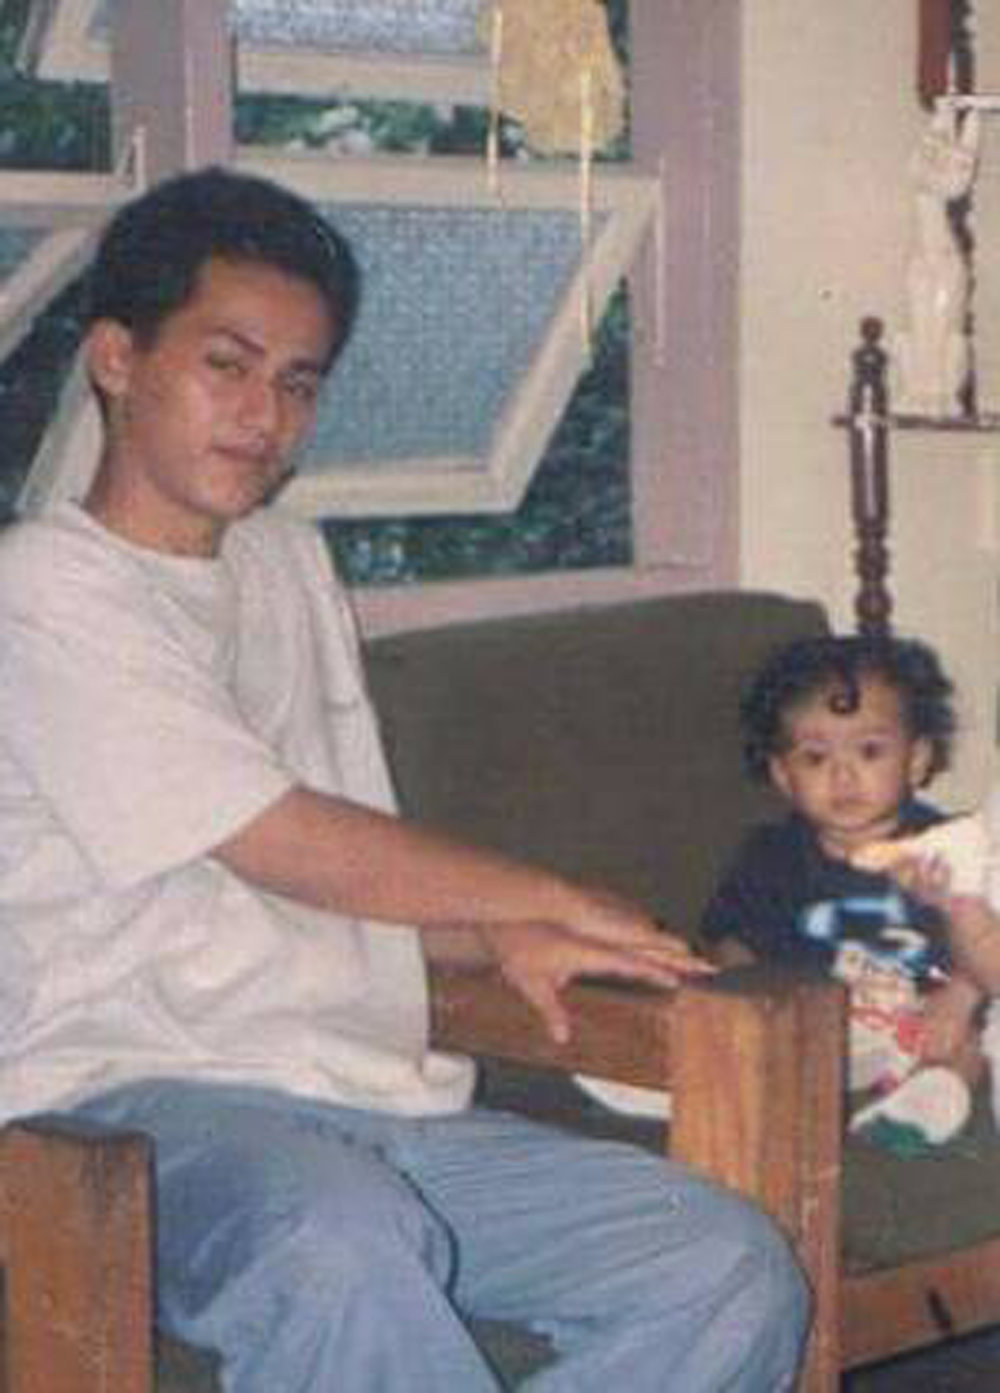 Sean as a toddler with his father who taught him things by example.